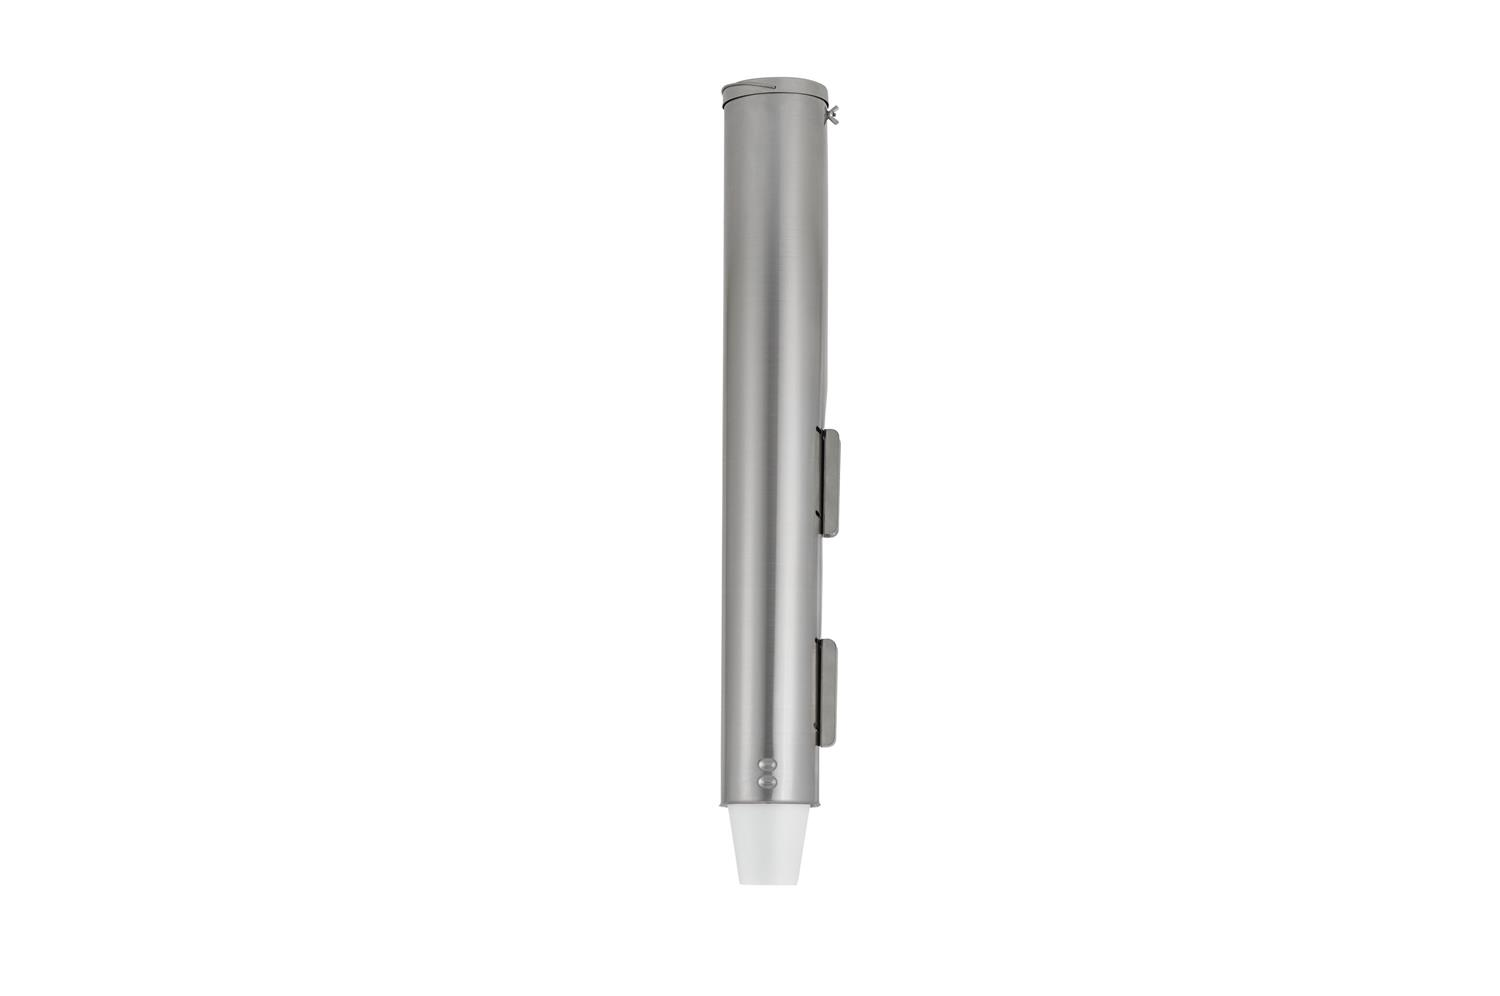 Vollrath PLC-3 Stainless Steel Cup Dispenser